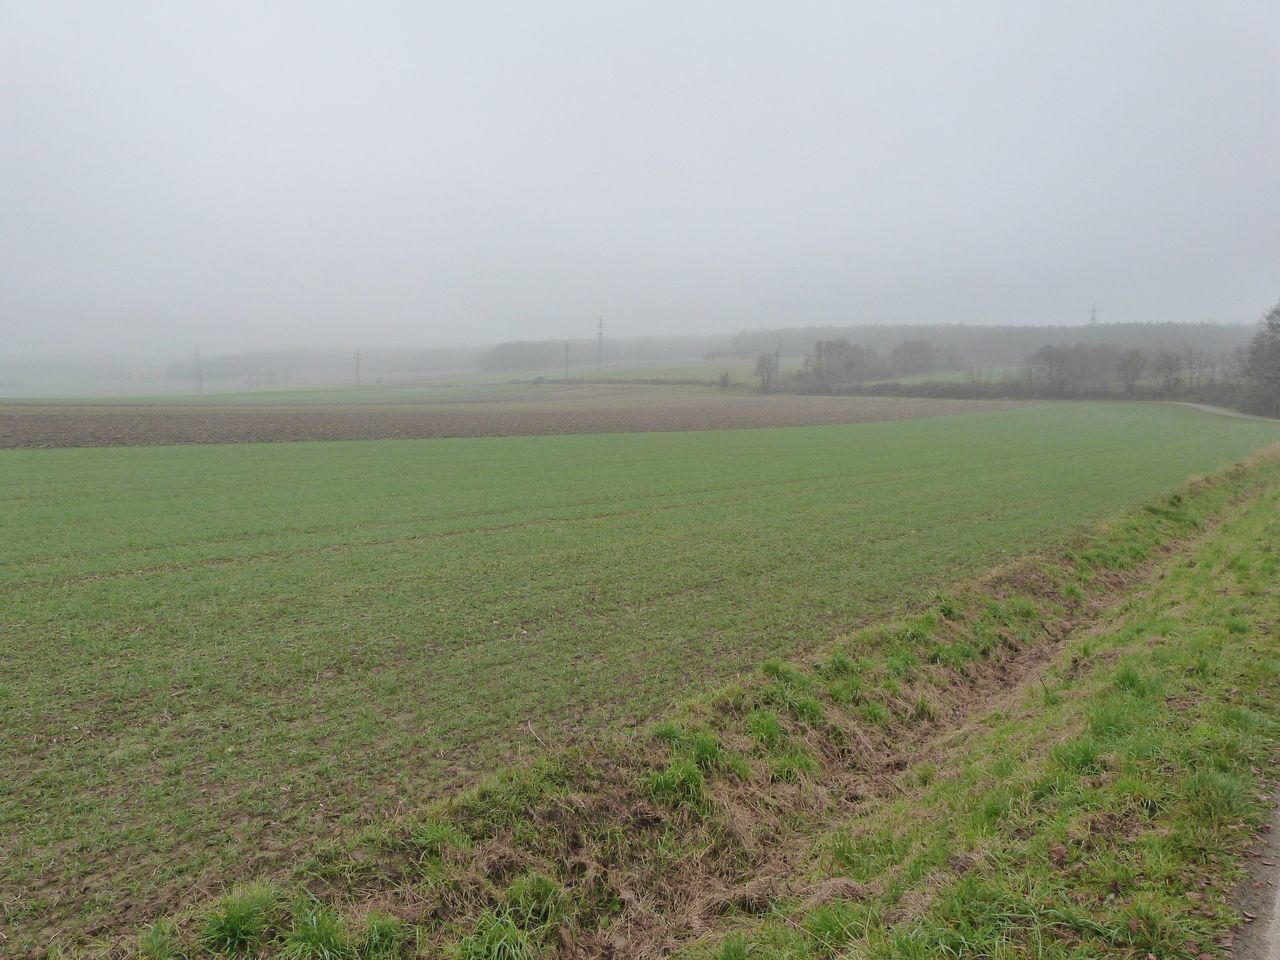 field, agriculture, landscape, fog, nature, rural scene, weather, day, beauty in nature, tranquil scene, tranquility, no people, outdoors, growth, grass, plough, scenics, sky